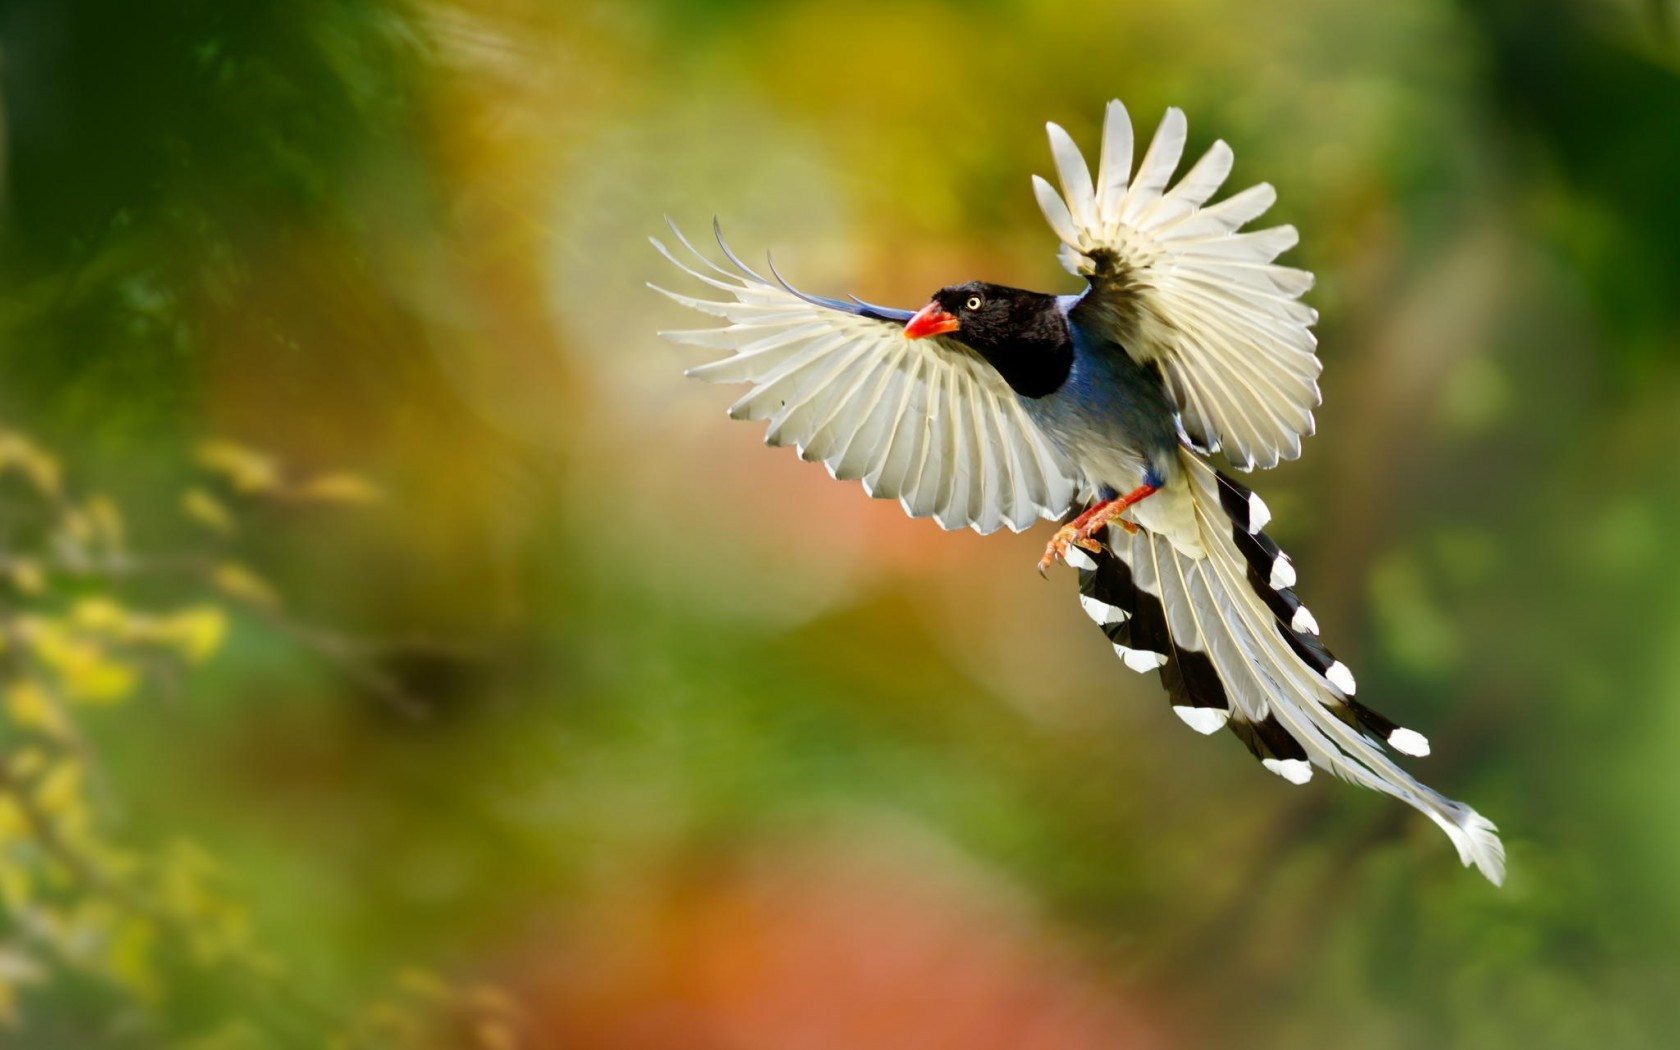 Beautiful Bird Wings Hd Desktop Wallpapers 4k Hd